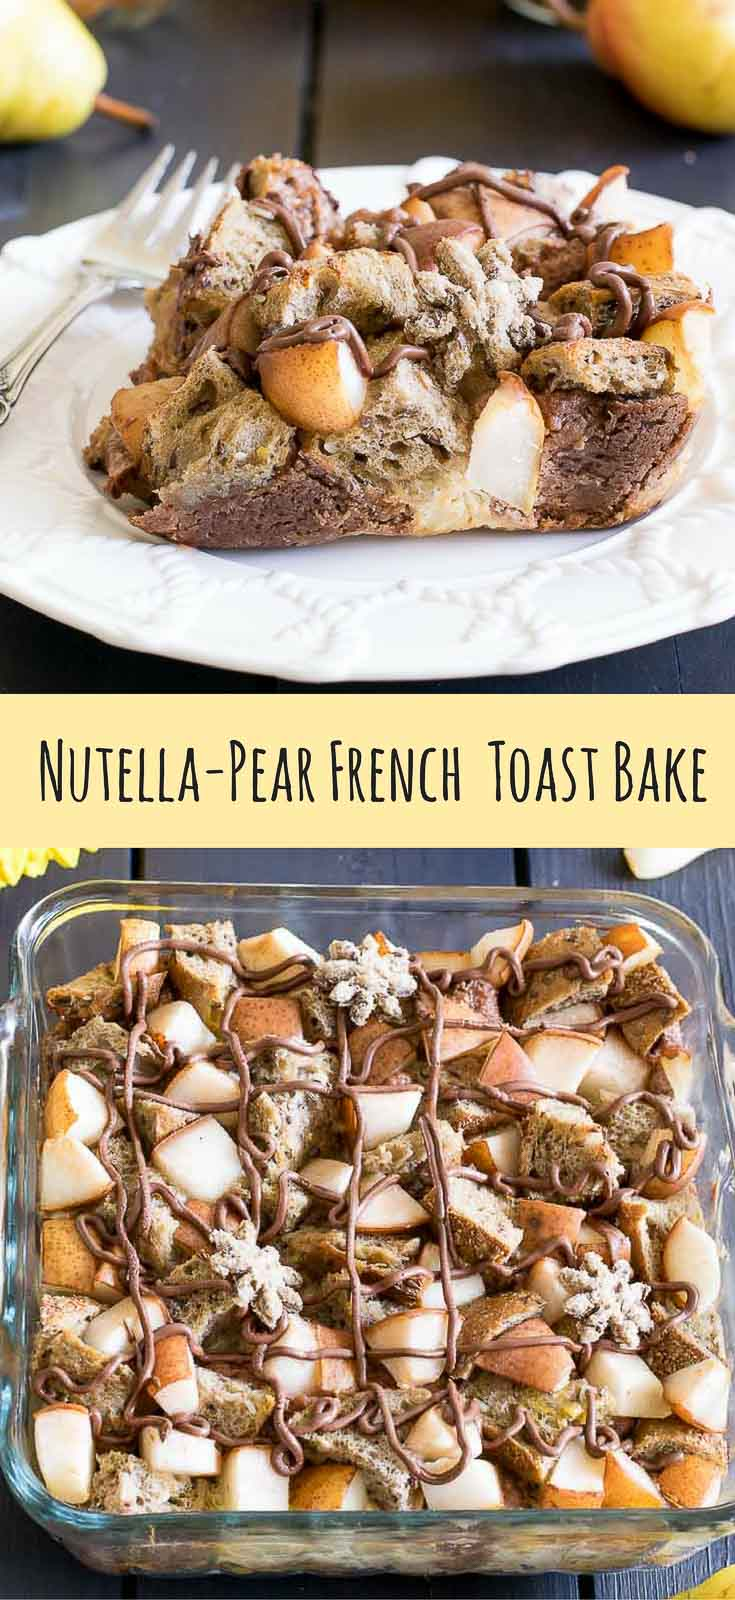 An easy overnight breakfast bake filled with cream cheese, Nutella and chunks of juicy pear. It's sure to delight friends and family!